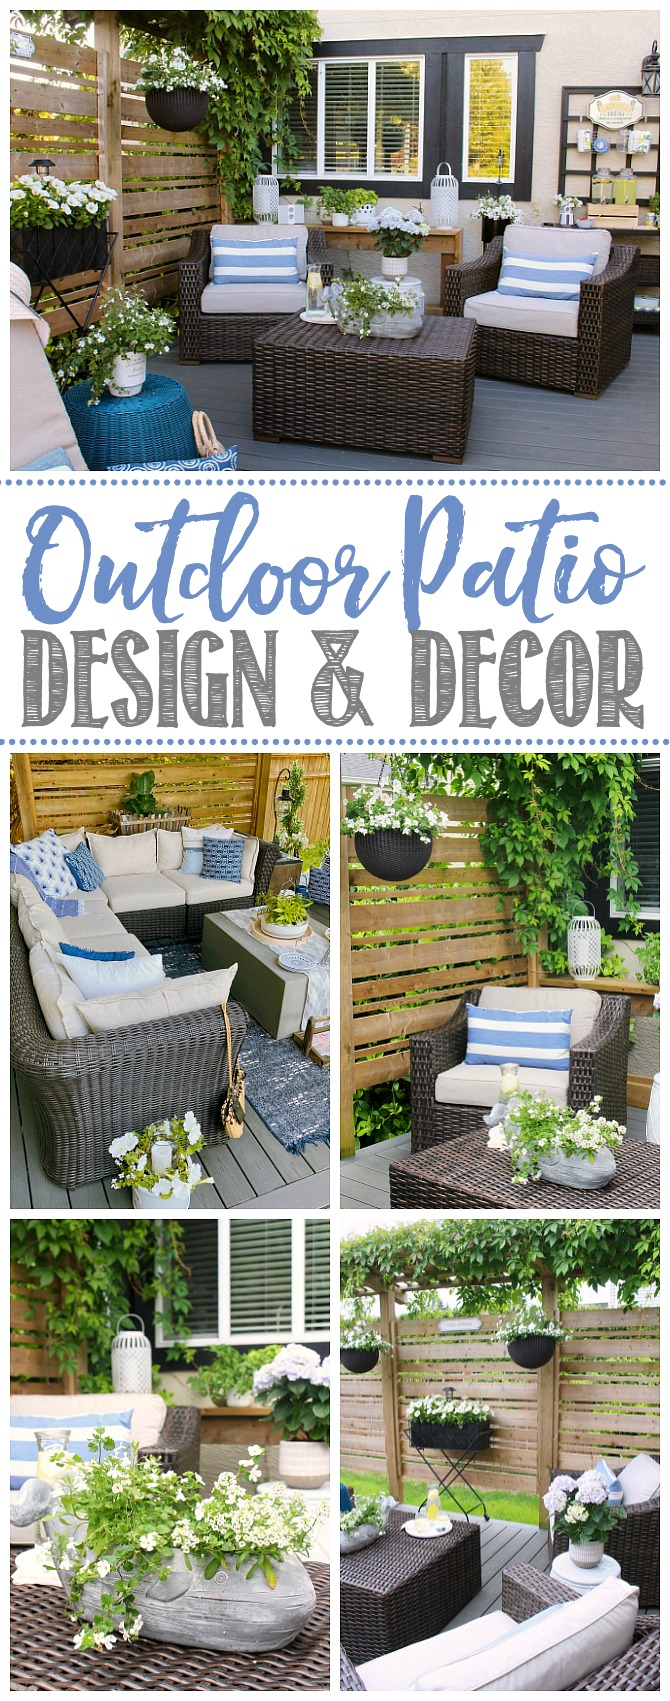 Collage of beautiful outdoor patio design ideas.